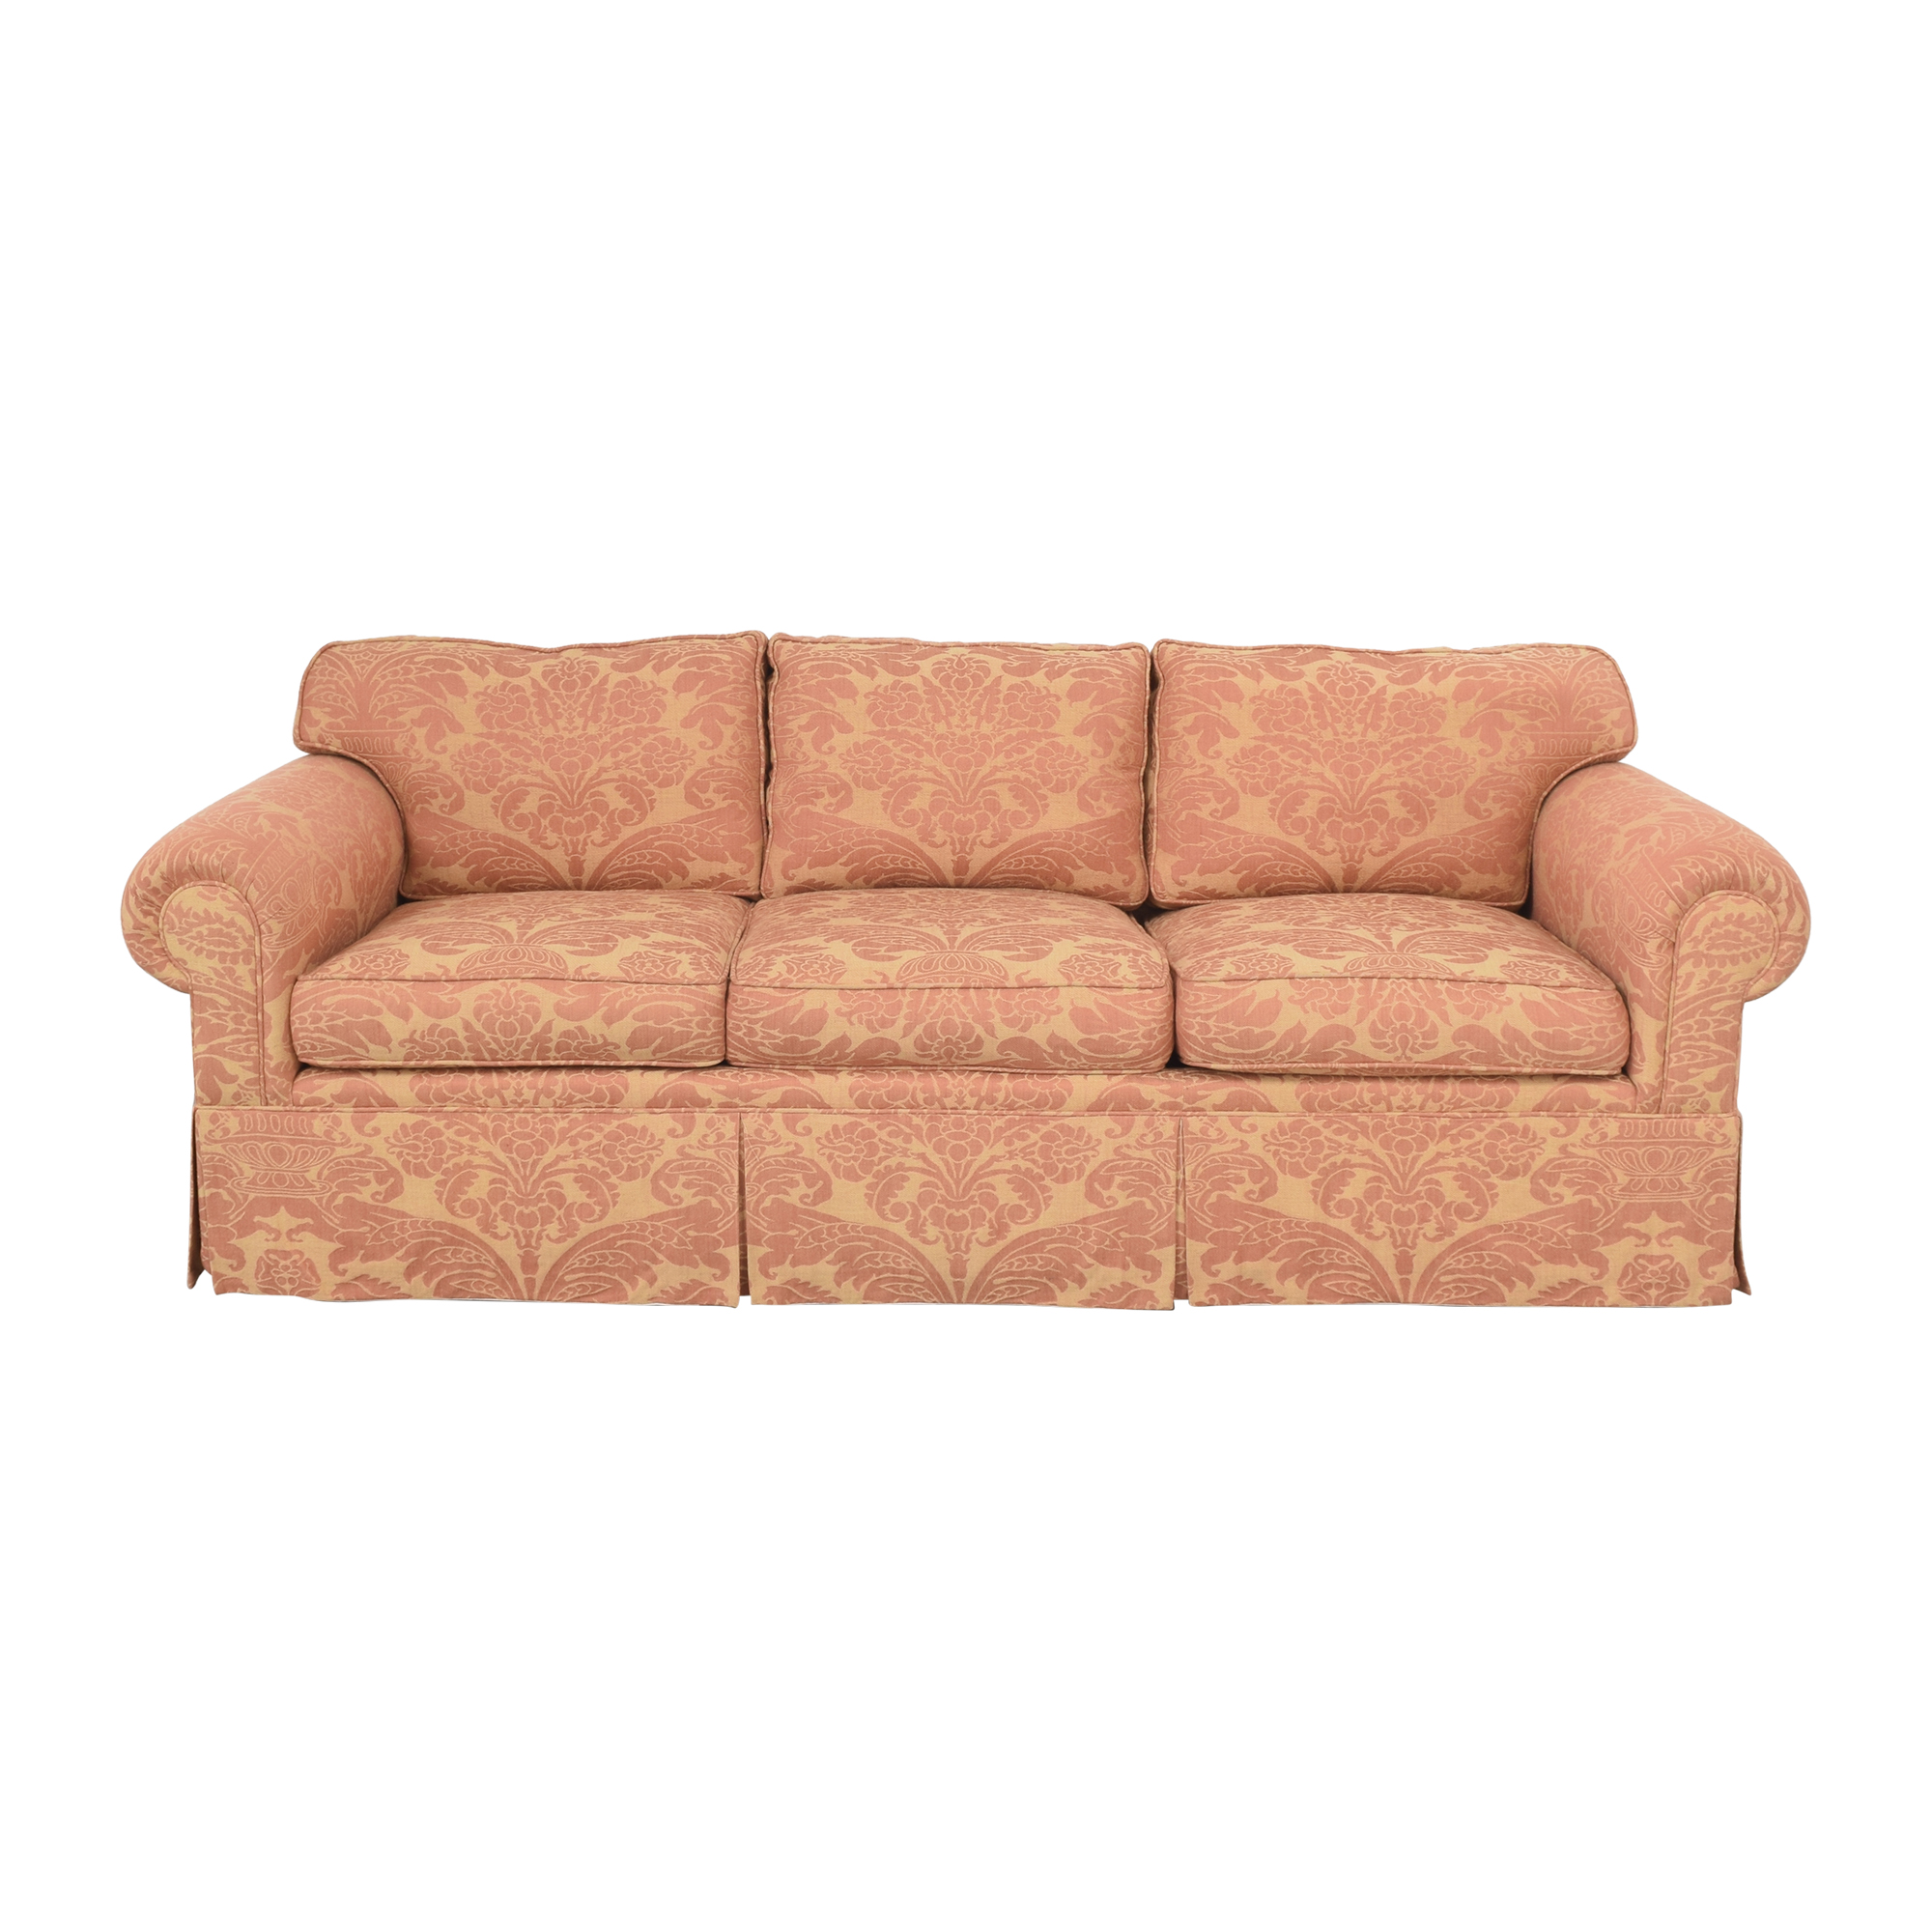 Roll Arm Skirted Sofa pinky & beige